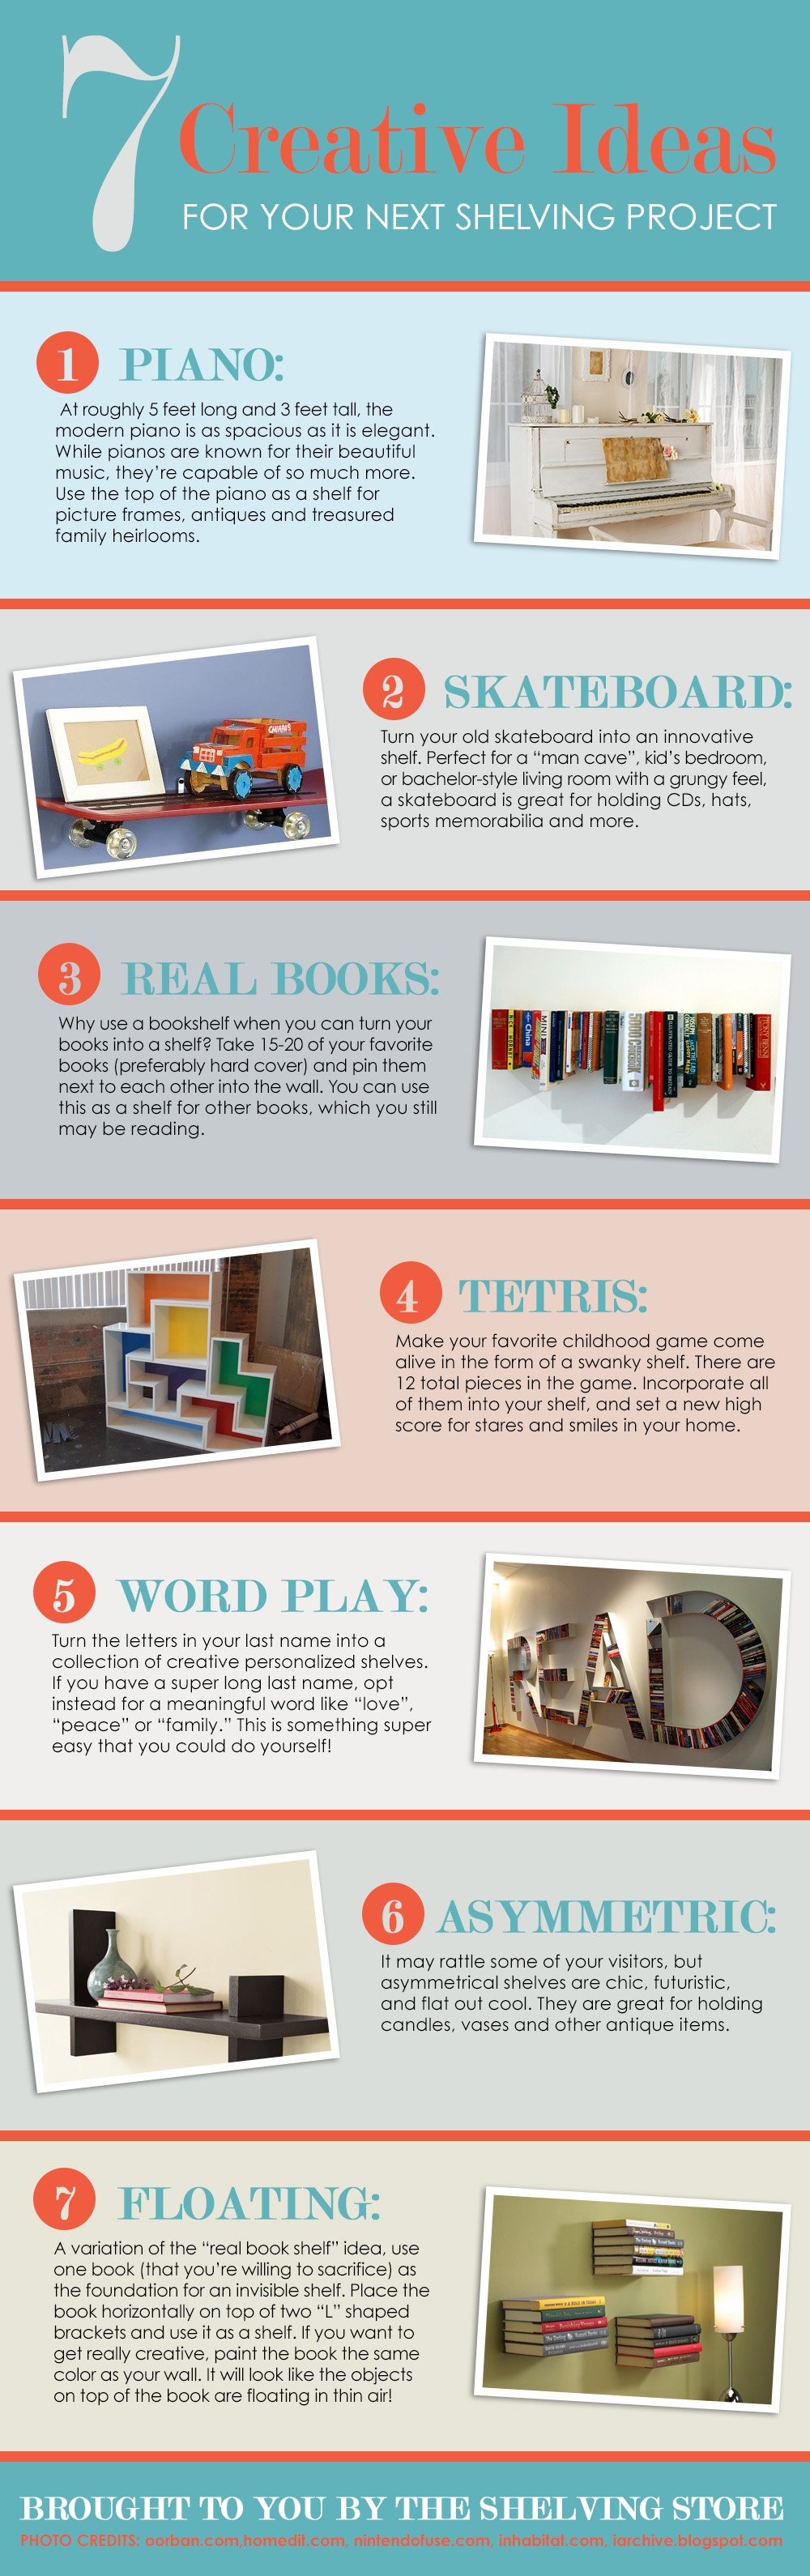 Creative Ideas for Shelving Project